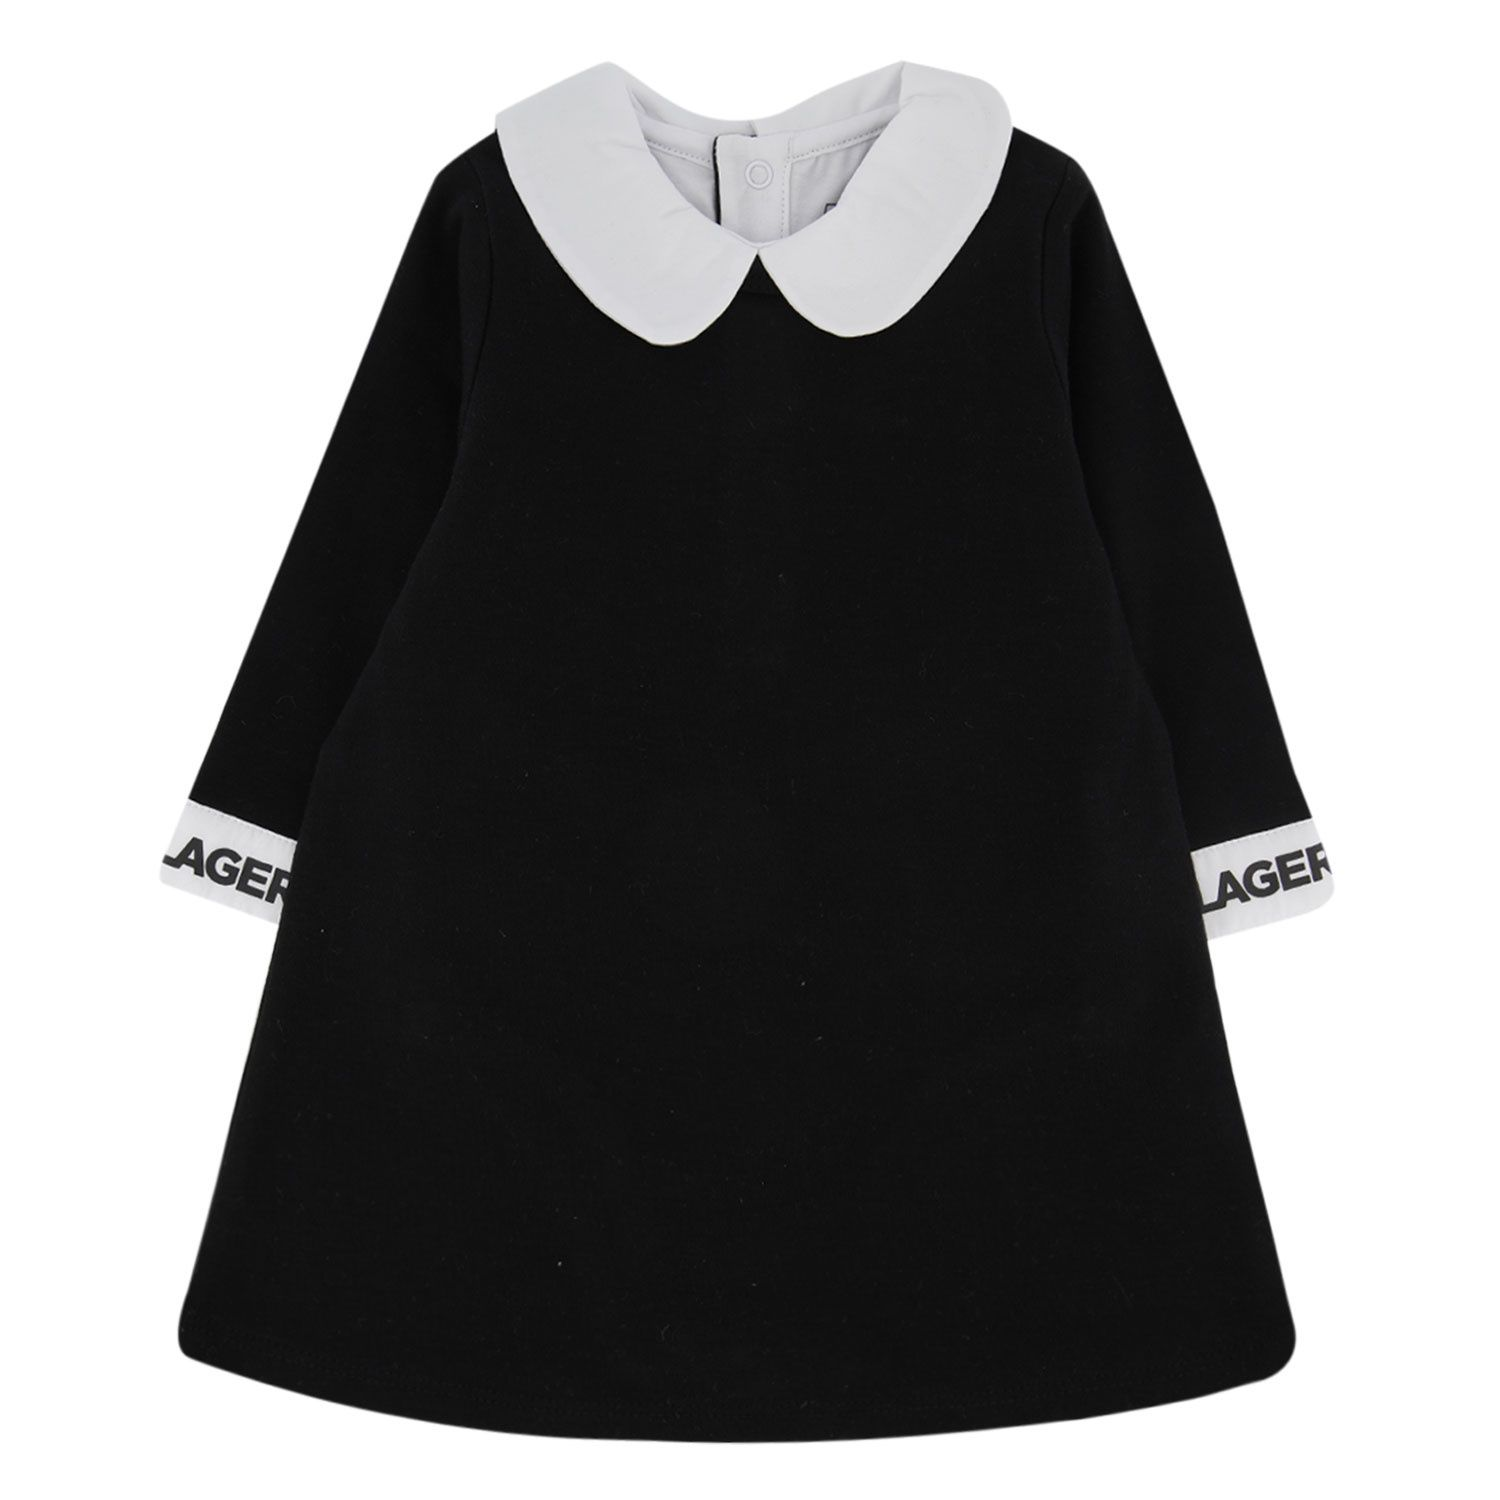 Picture of Karl Lagerfeld Z92015 baby dress black